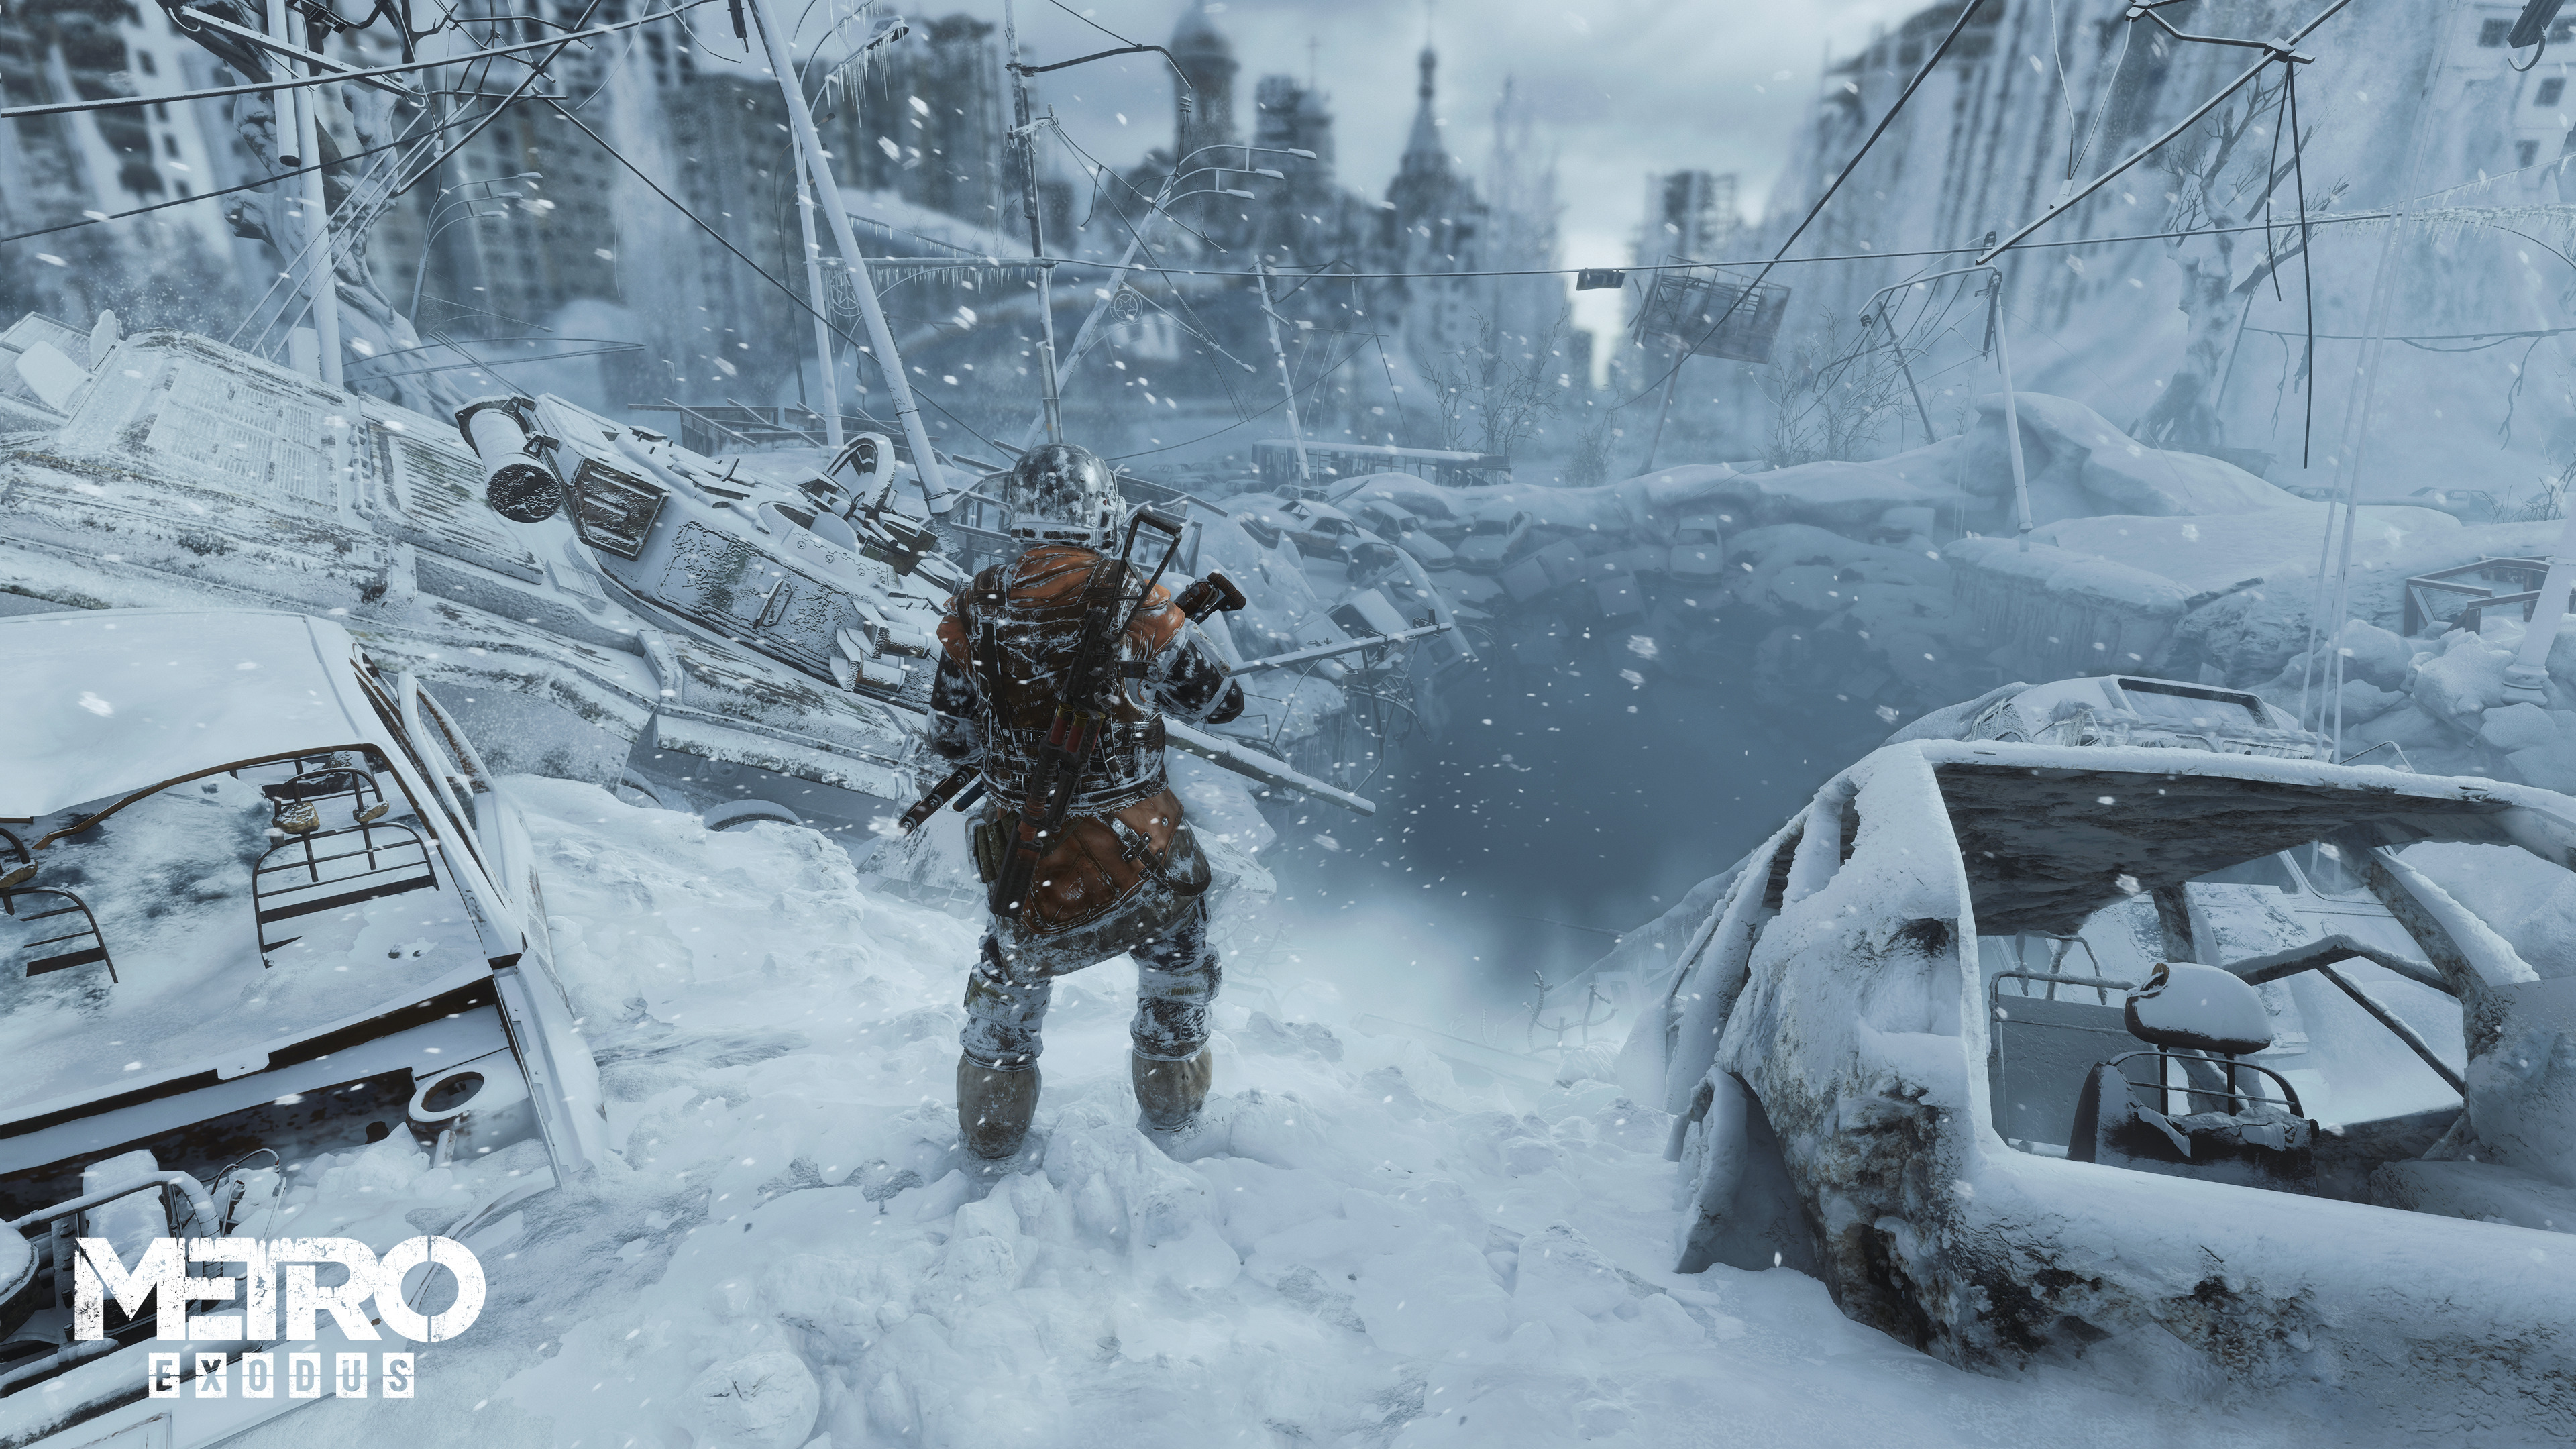 metro exodus 2018 4k 1547938506 - Metro Exodus 2018 4k - metro exodus wallpapers, hd-wallpapers, games wallpapers, 4k-wallpapers, 2018 games wallpapers